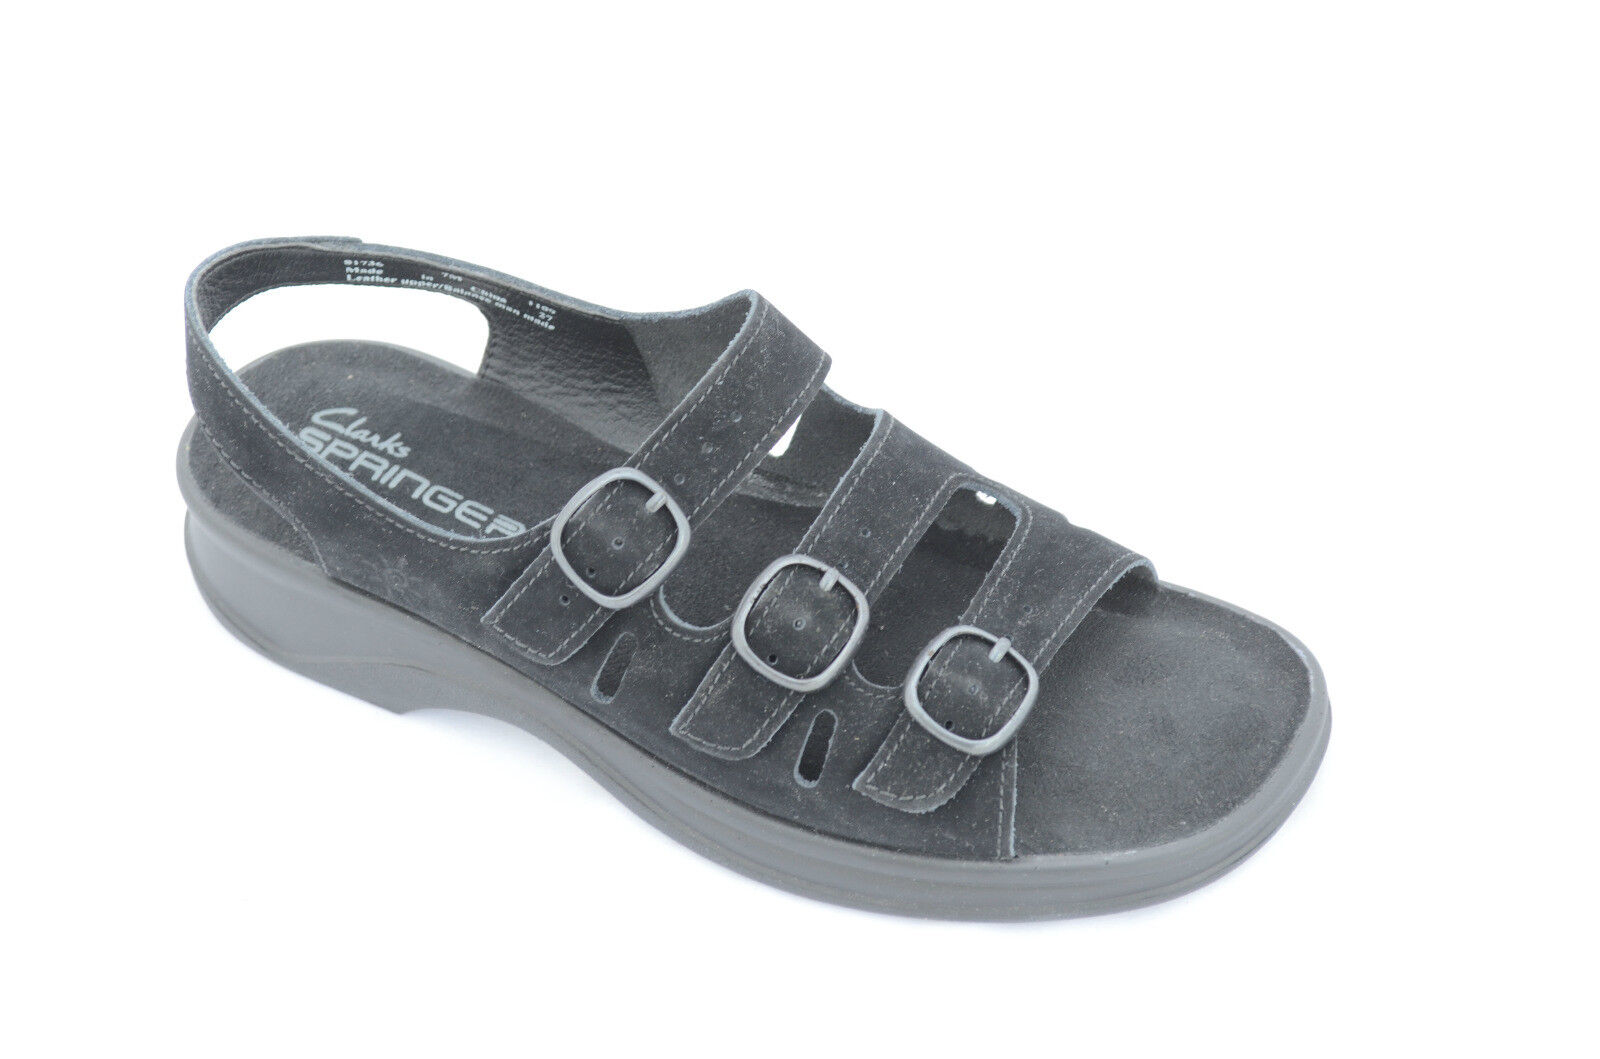 Clarks Wouomo Wouomo Wouomo Carrie May Sandal nero Leather 7M 2d7672